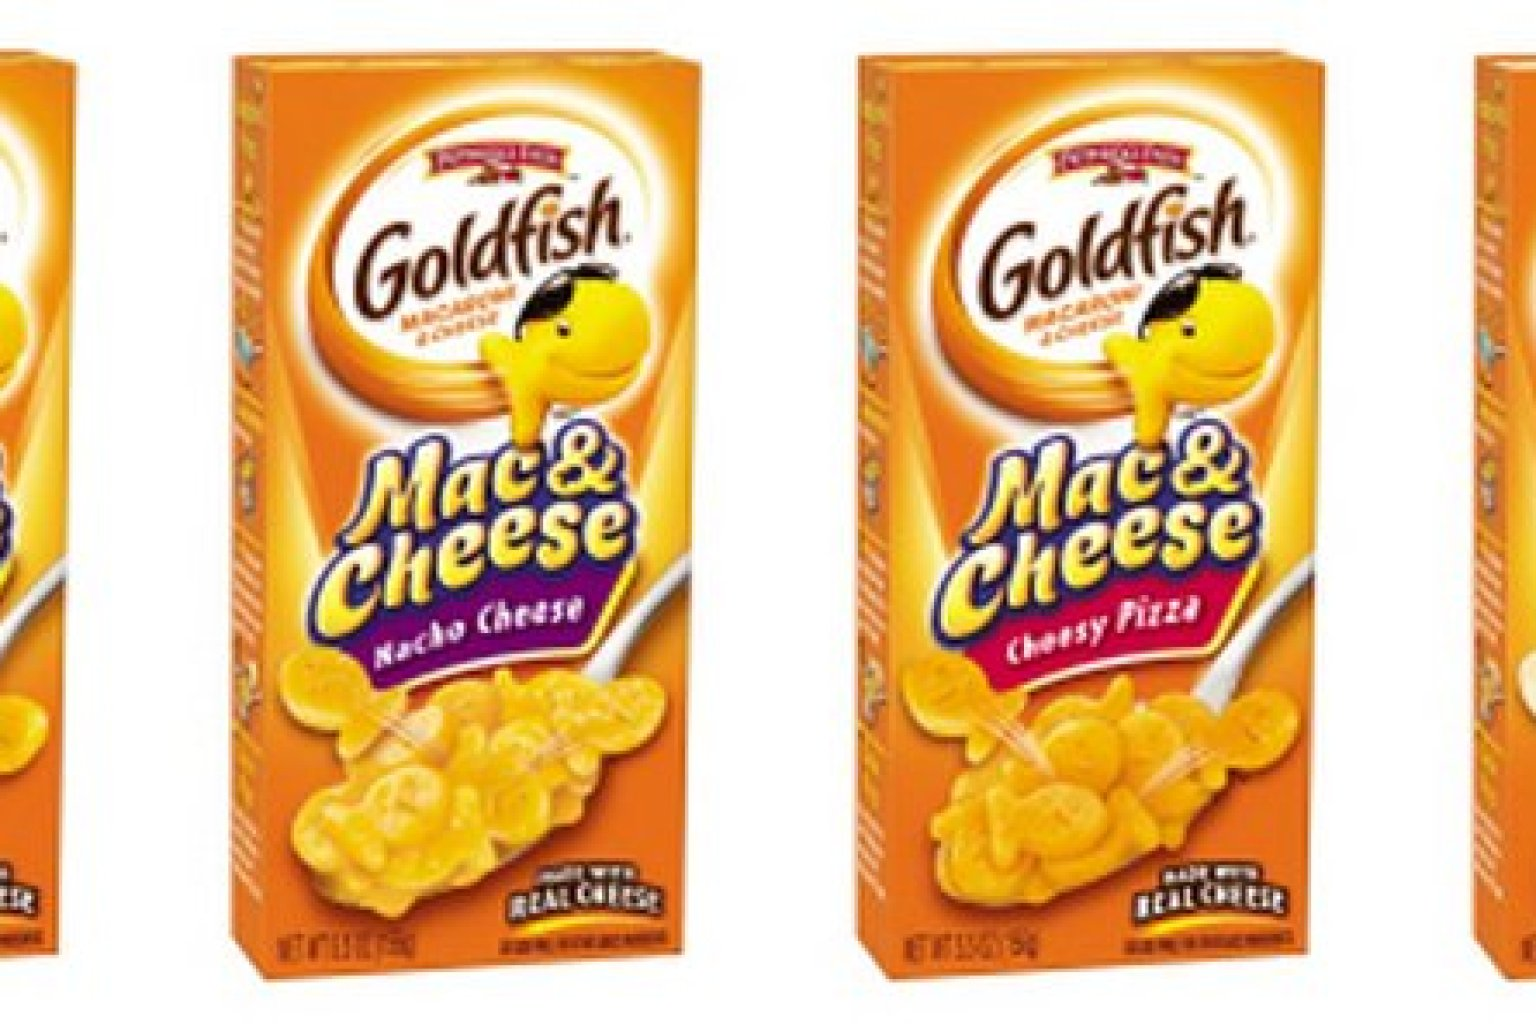 Goldfish mac cheese is best left on the shelf huffpost for Fish and cheese